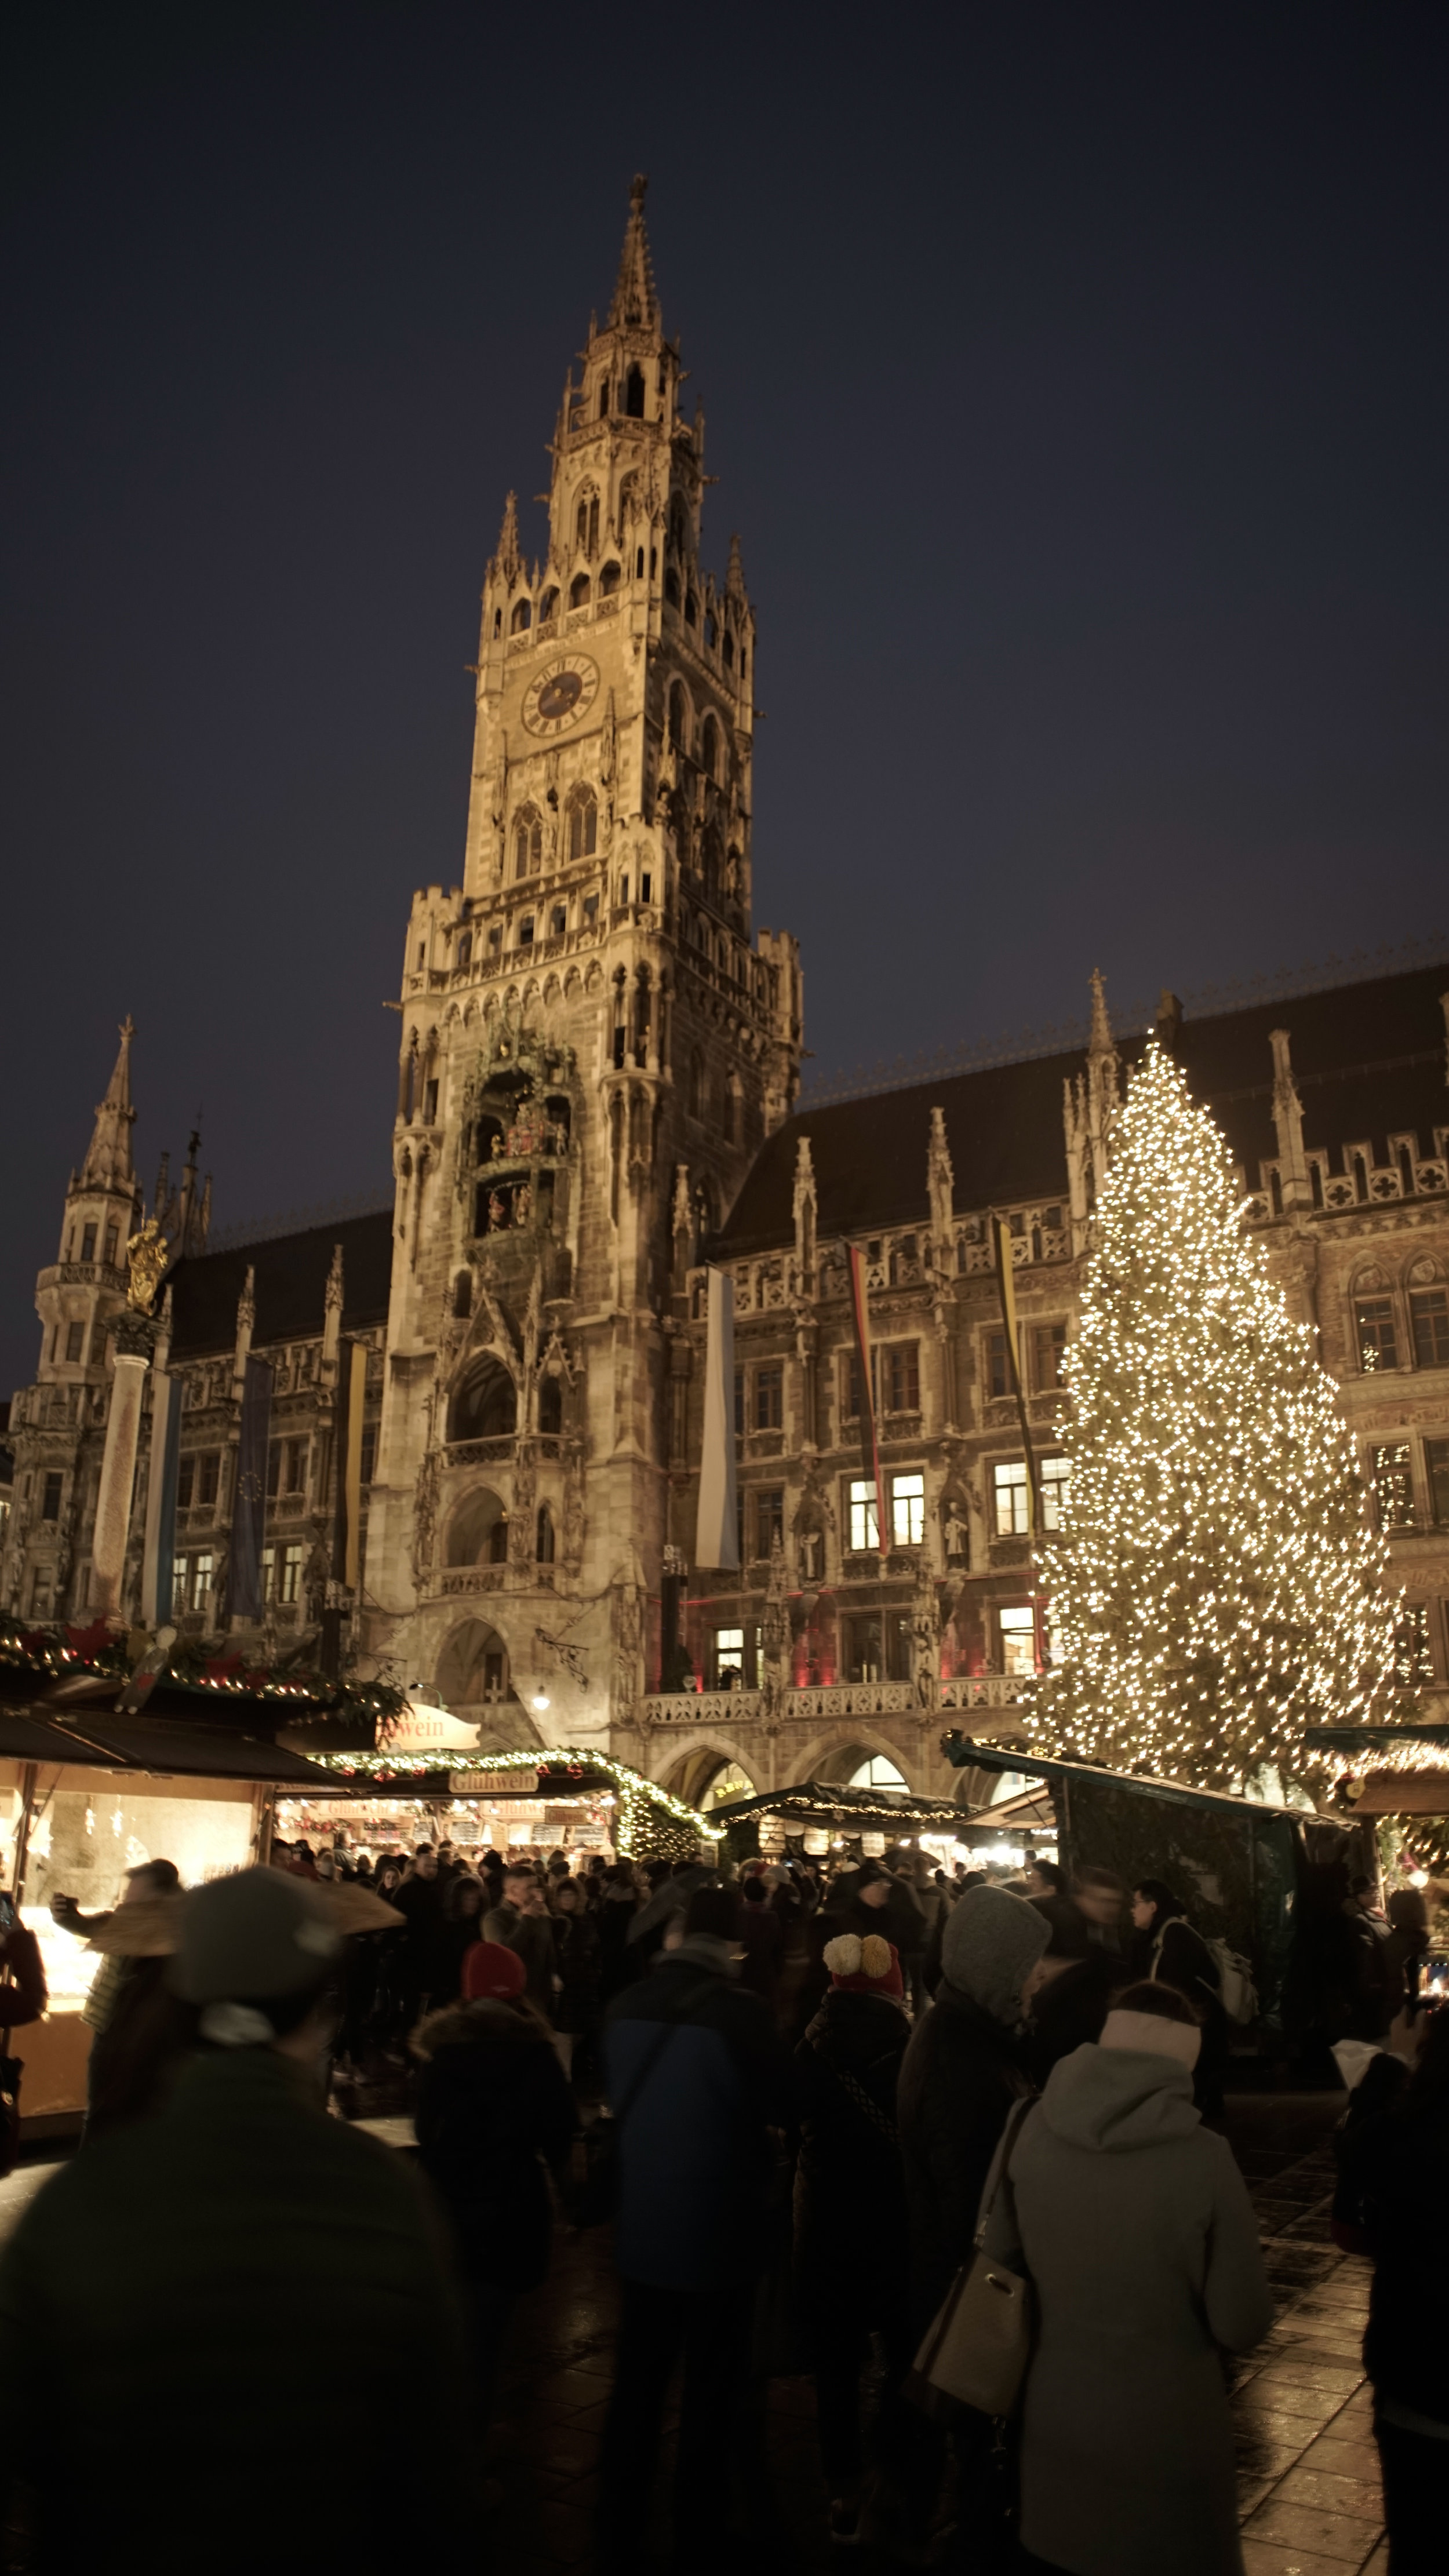 Munich Town Hall lit up for Christmas